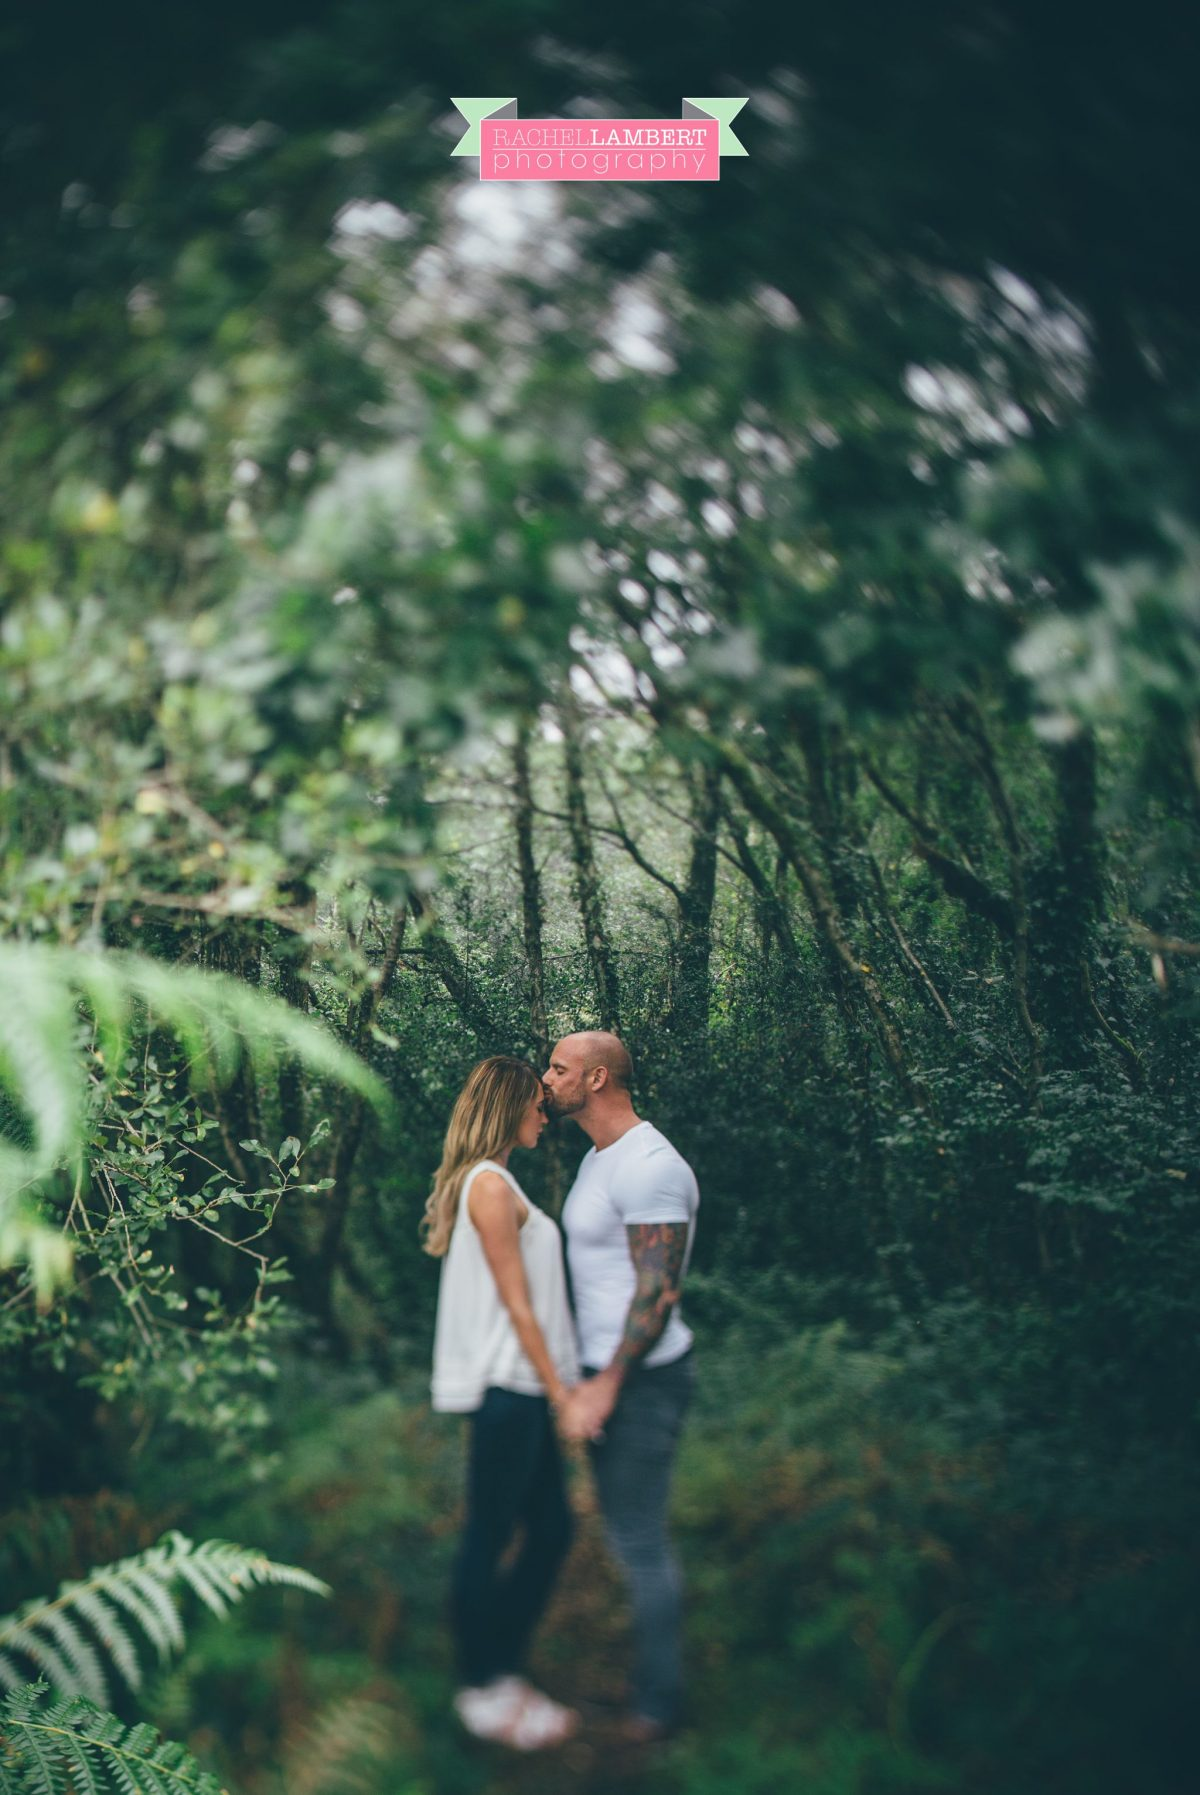 welsh_wedding_photographer_rachel_lambert_photography_cardiff_engagement_shoot_rhiannon_gavin_ 12